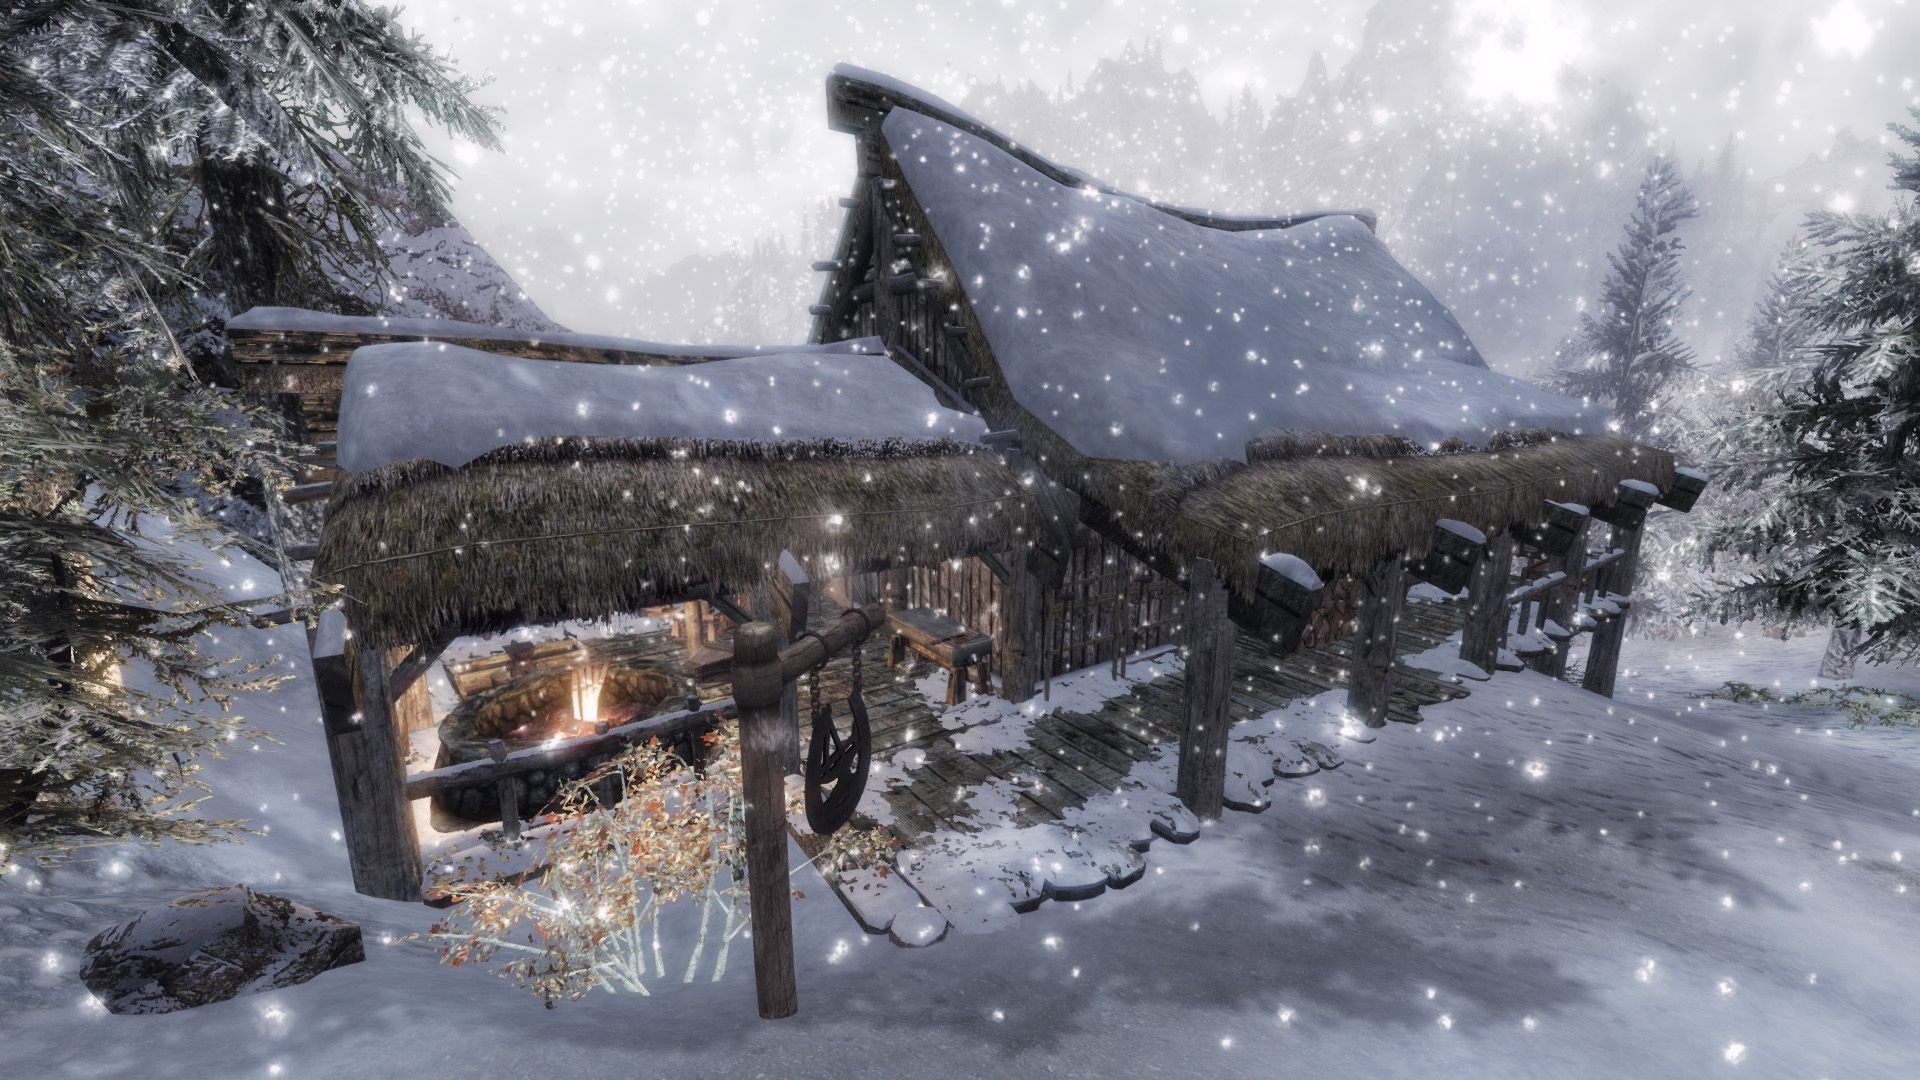 Skyrim Cutting Room Floor Changes